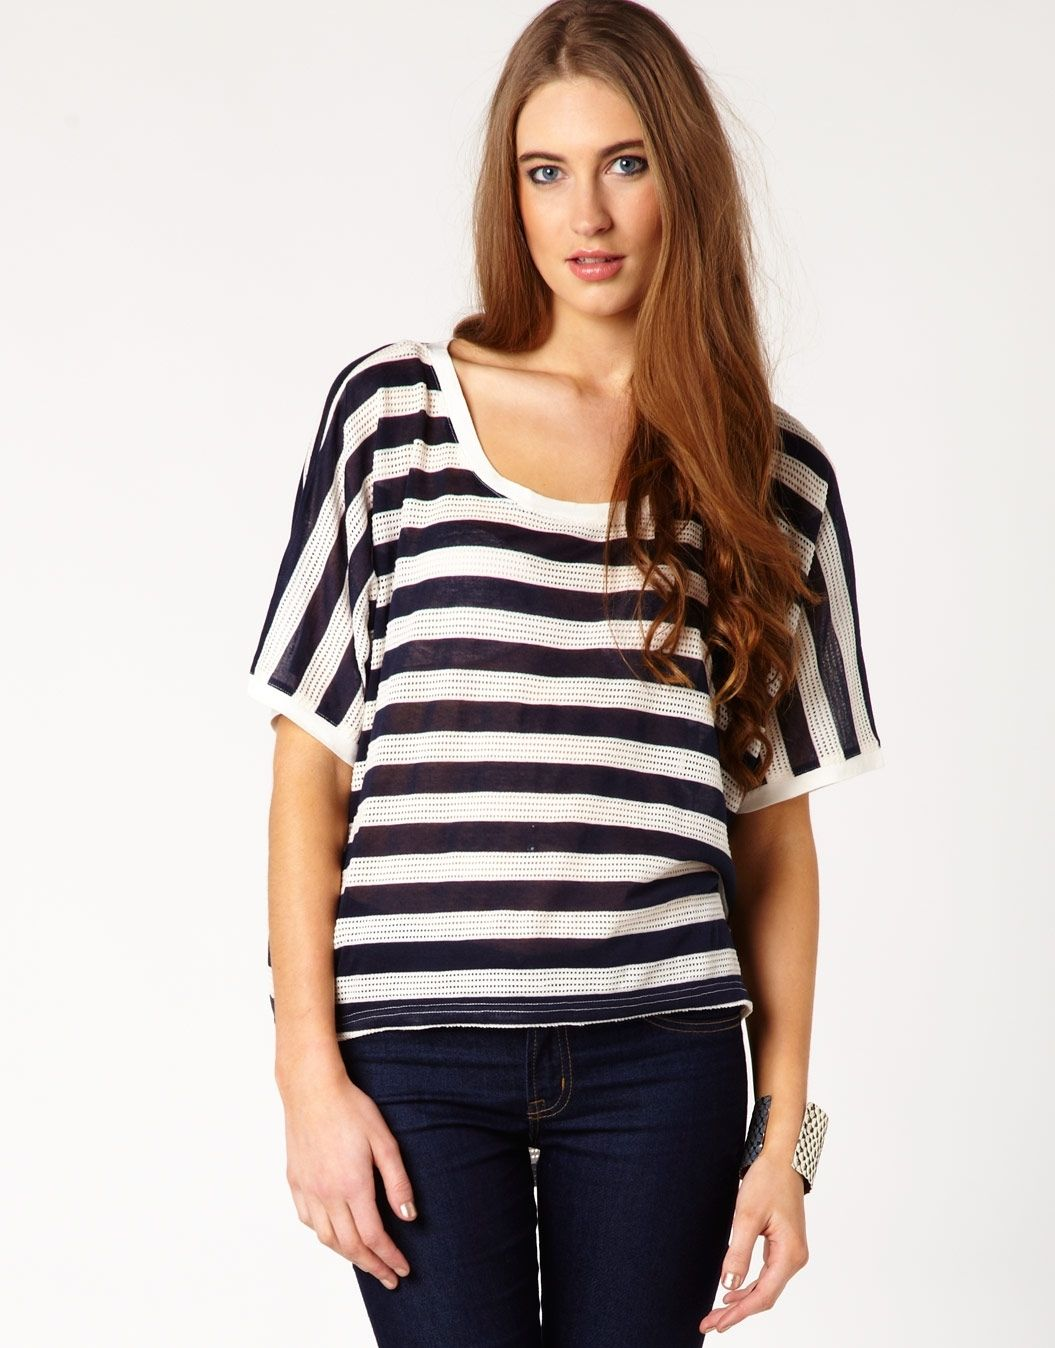 Glassons - Cropped Stripe Tee ($24.99)